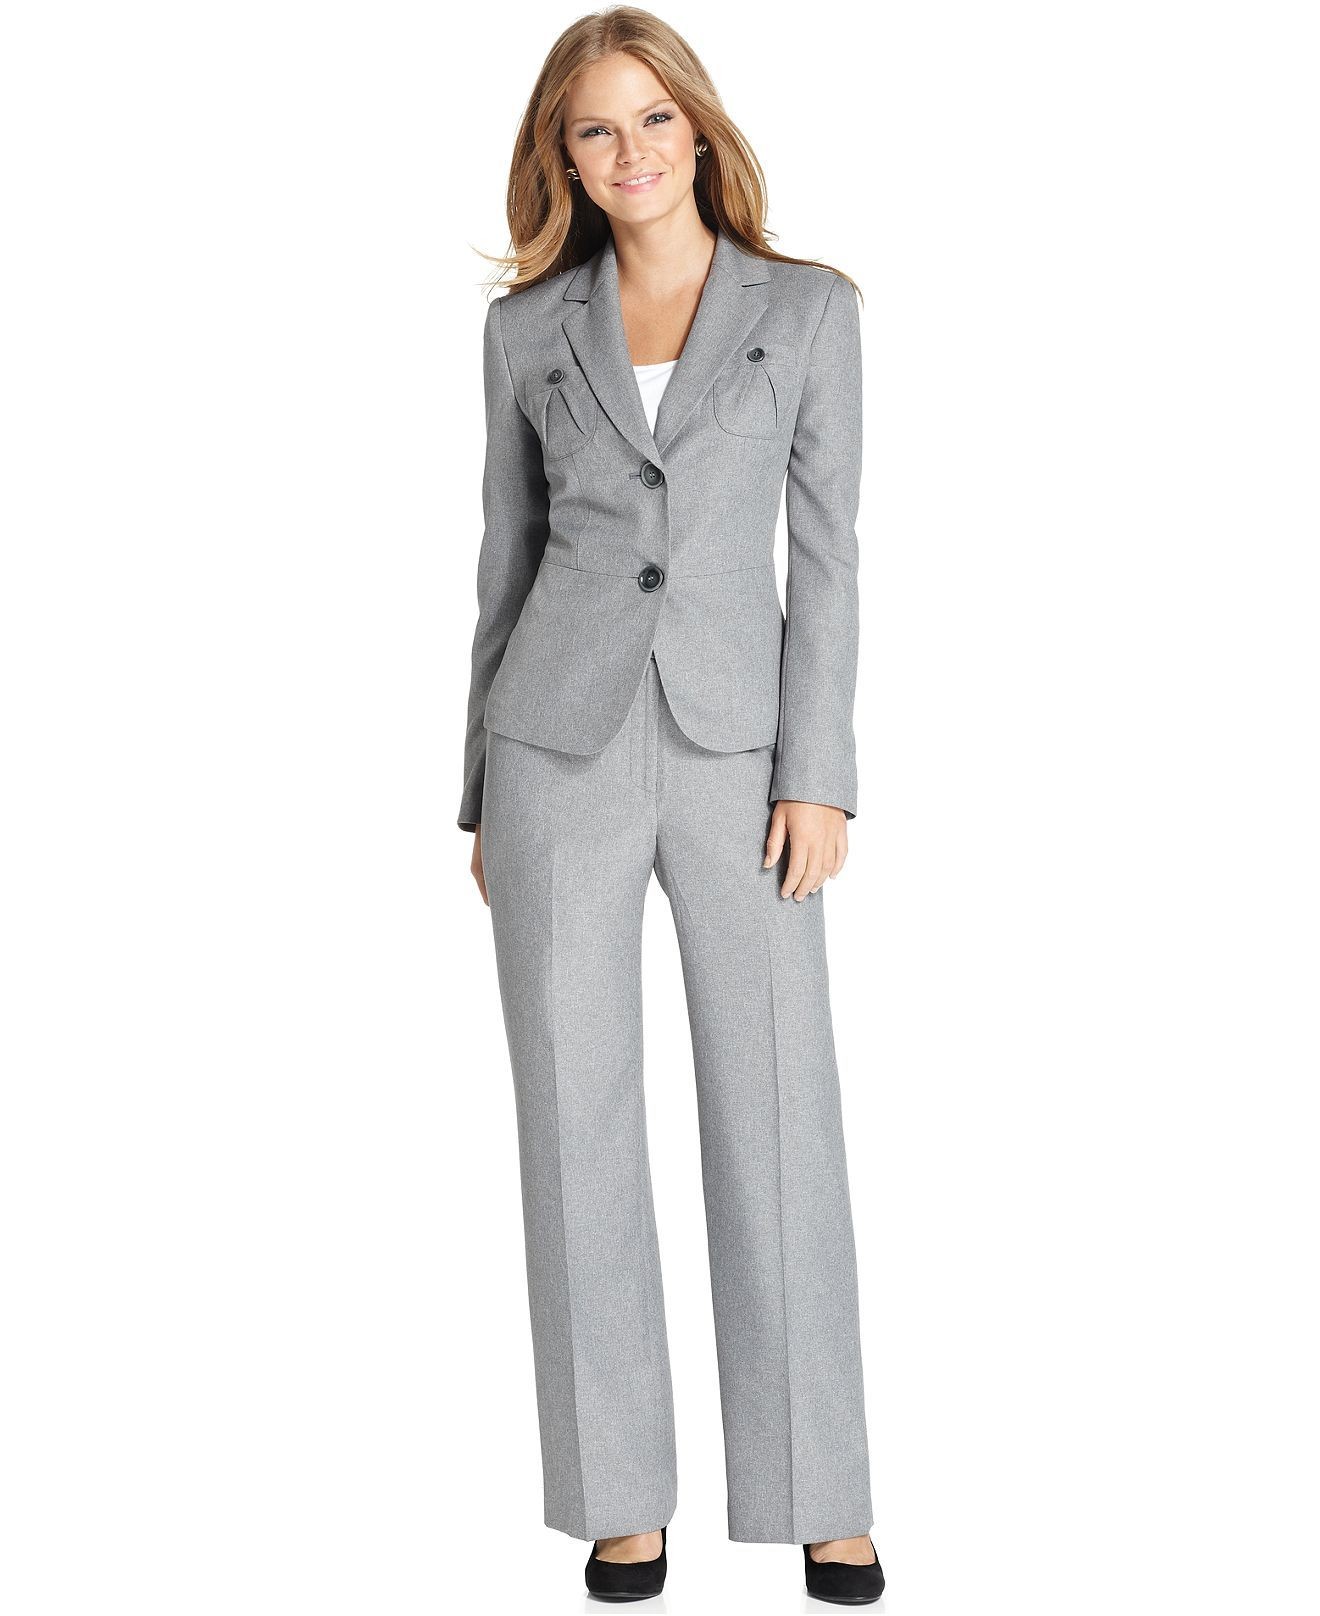 Le Suit Womens Business-Suit-Pants-Sets